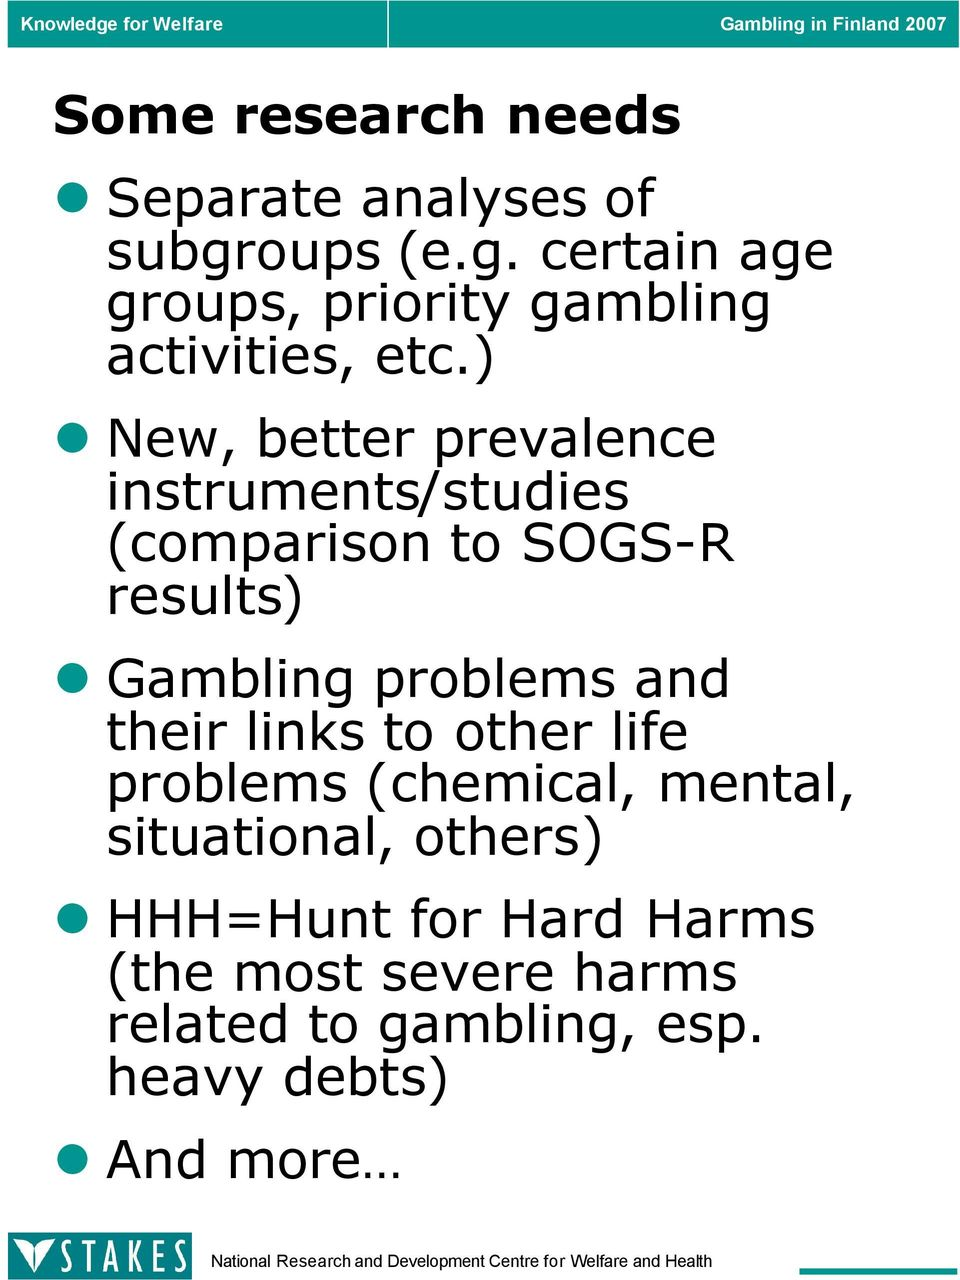 ) New, better prevalence instruments/studies (comparison to SOGS-R results) Gambling problems